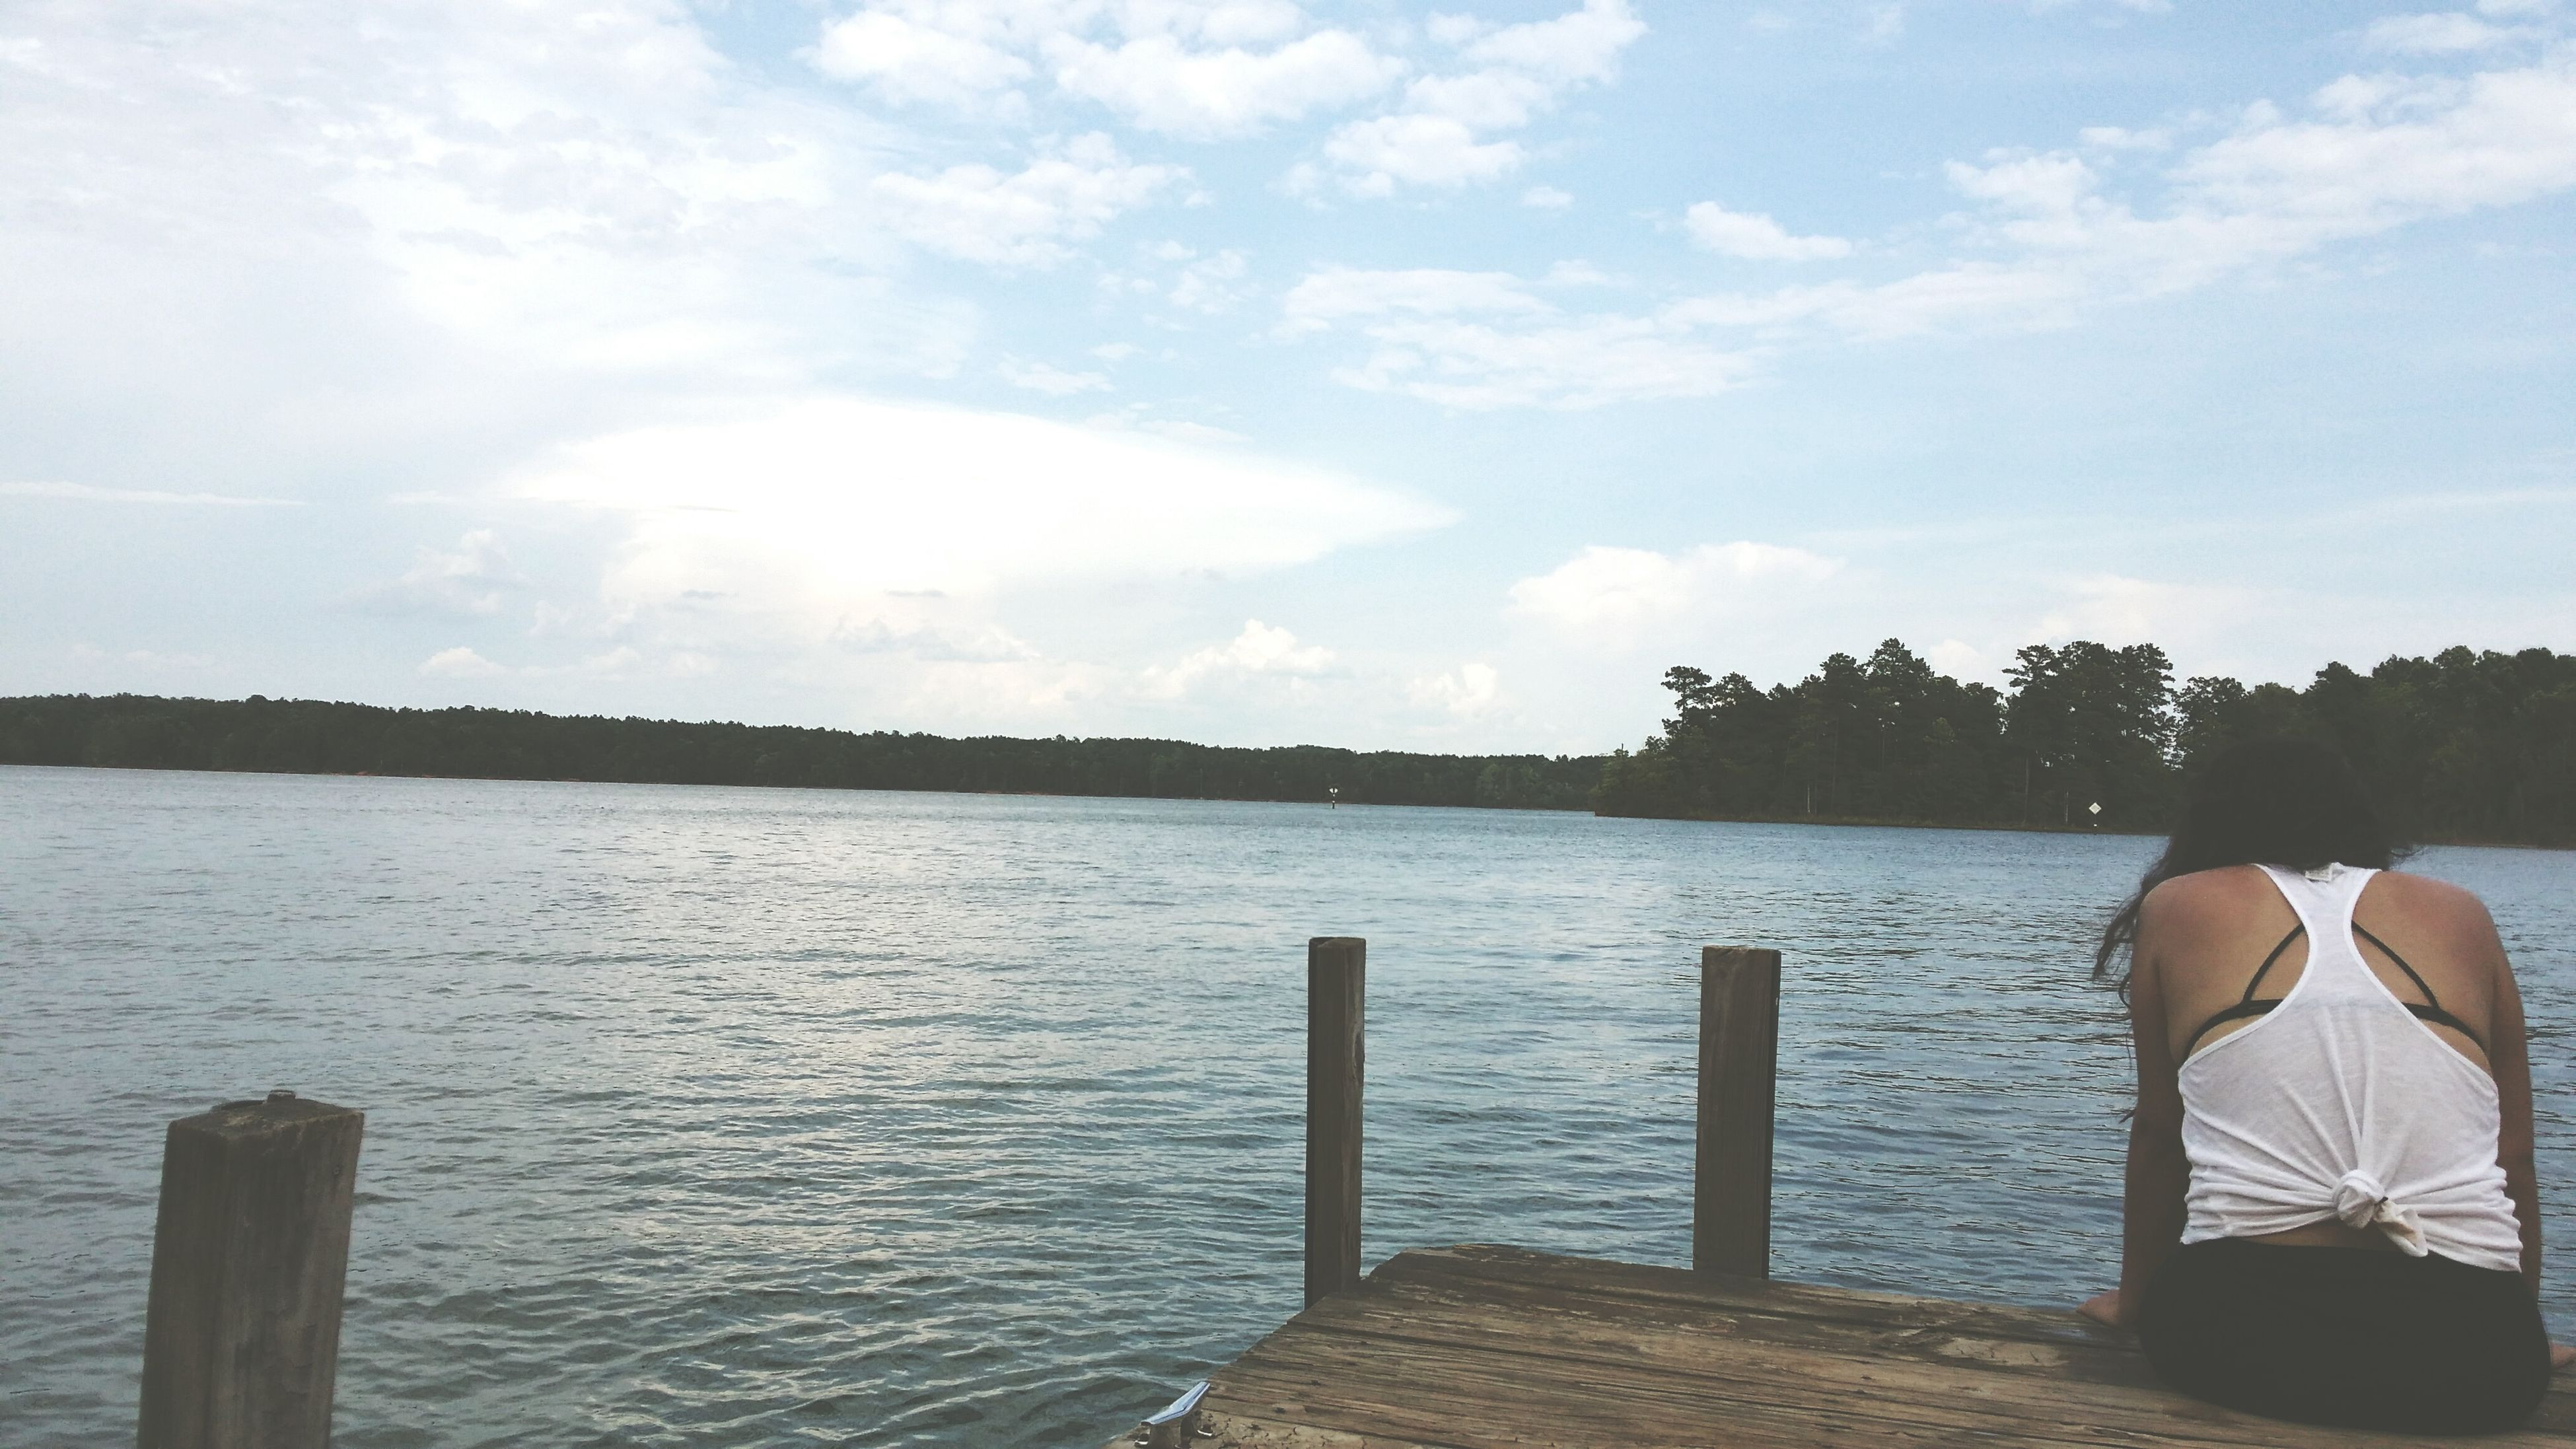 water, sky, tranquil scene, tranquility, scenics, cloud - sky, beauty in nature, sea, nature, pier, cloud, lake, tree, wood - material, idyllic, day, rippled, leisure activity